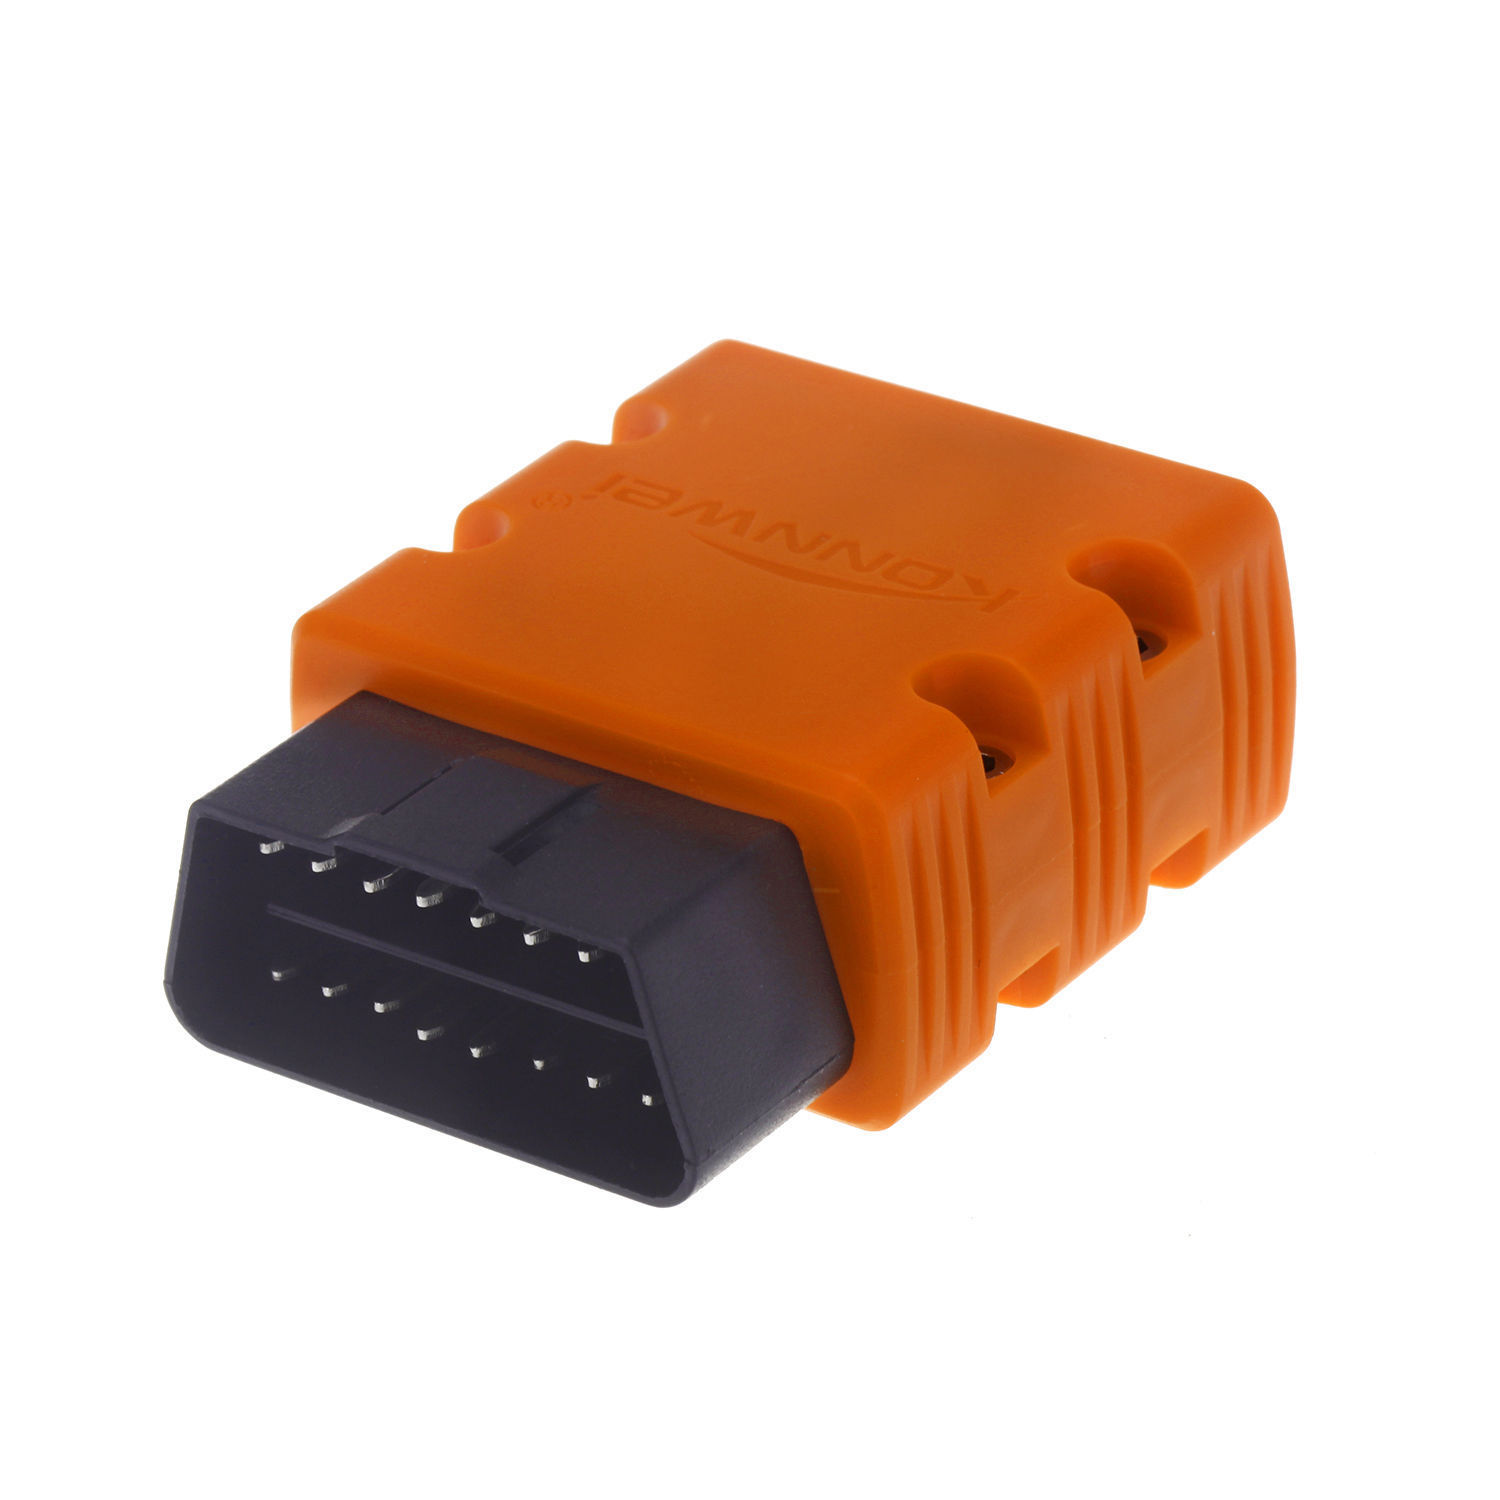 KONNWEI KW902 ELM327 OBD Mini Bluetooth Code Reader Auto Scanner Diagnostic Tool With Retail box UPS DHL